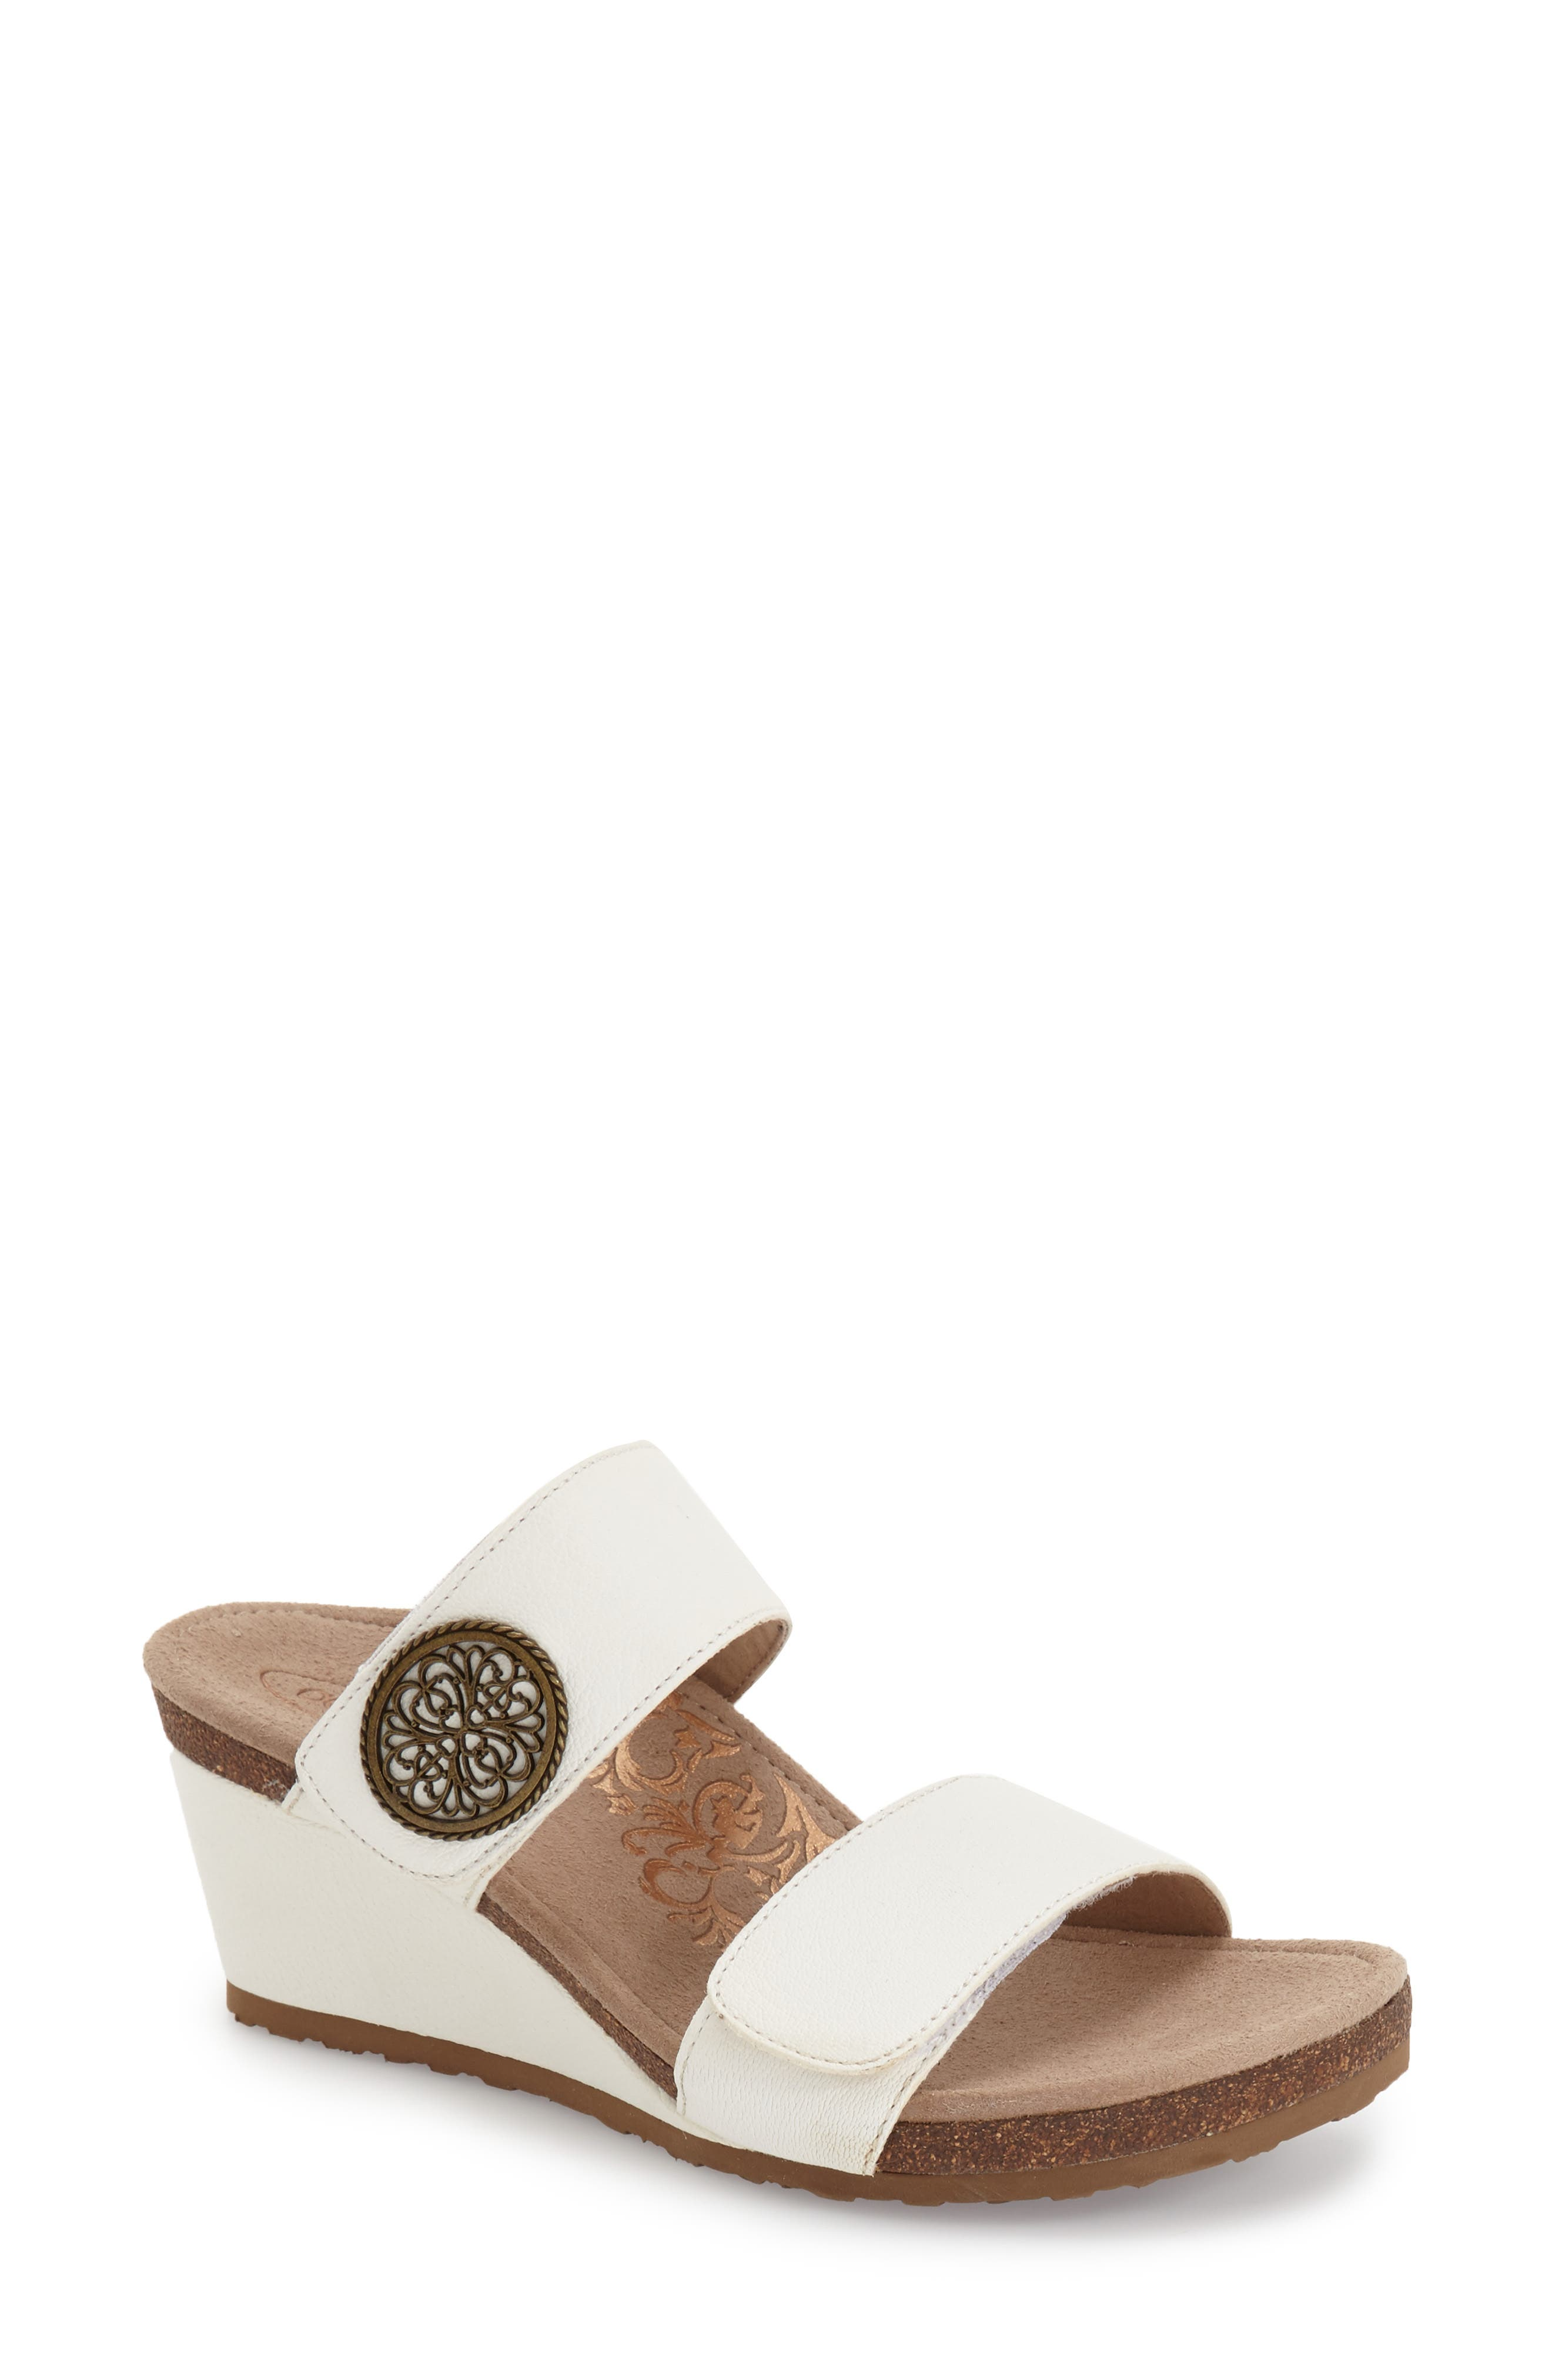 AETREX 'Marilyn' Leather Wedge Sandal